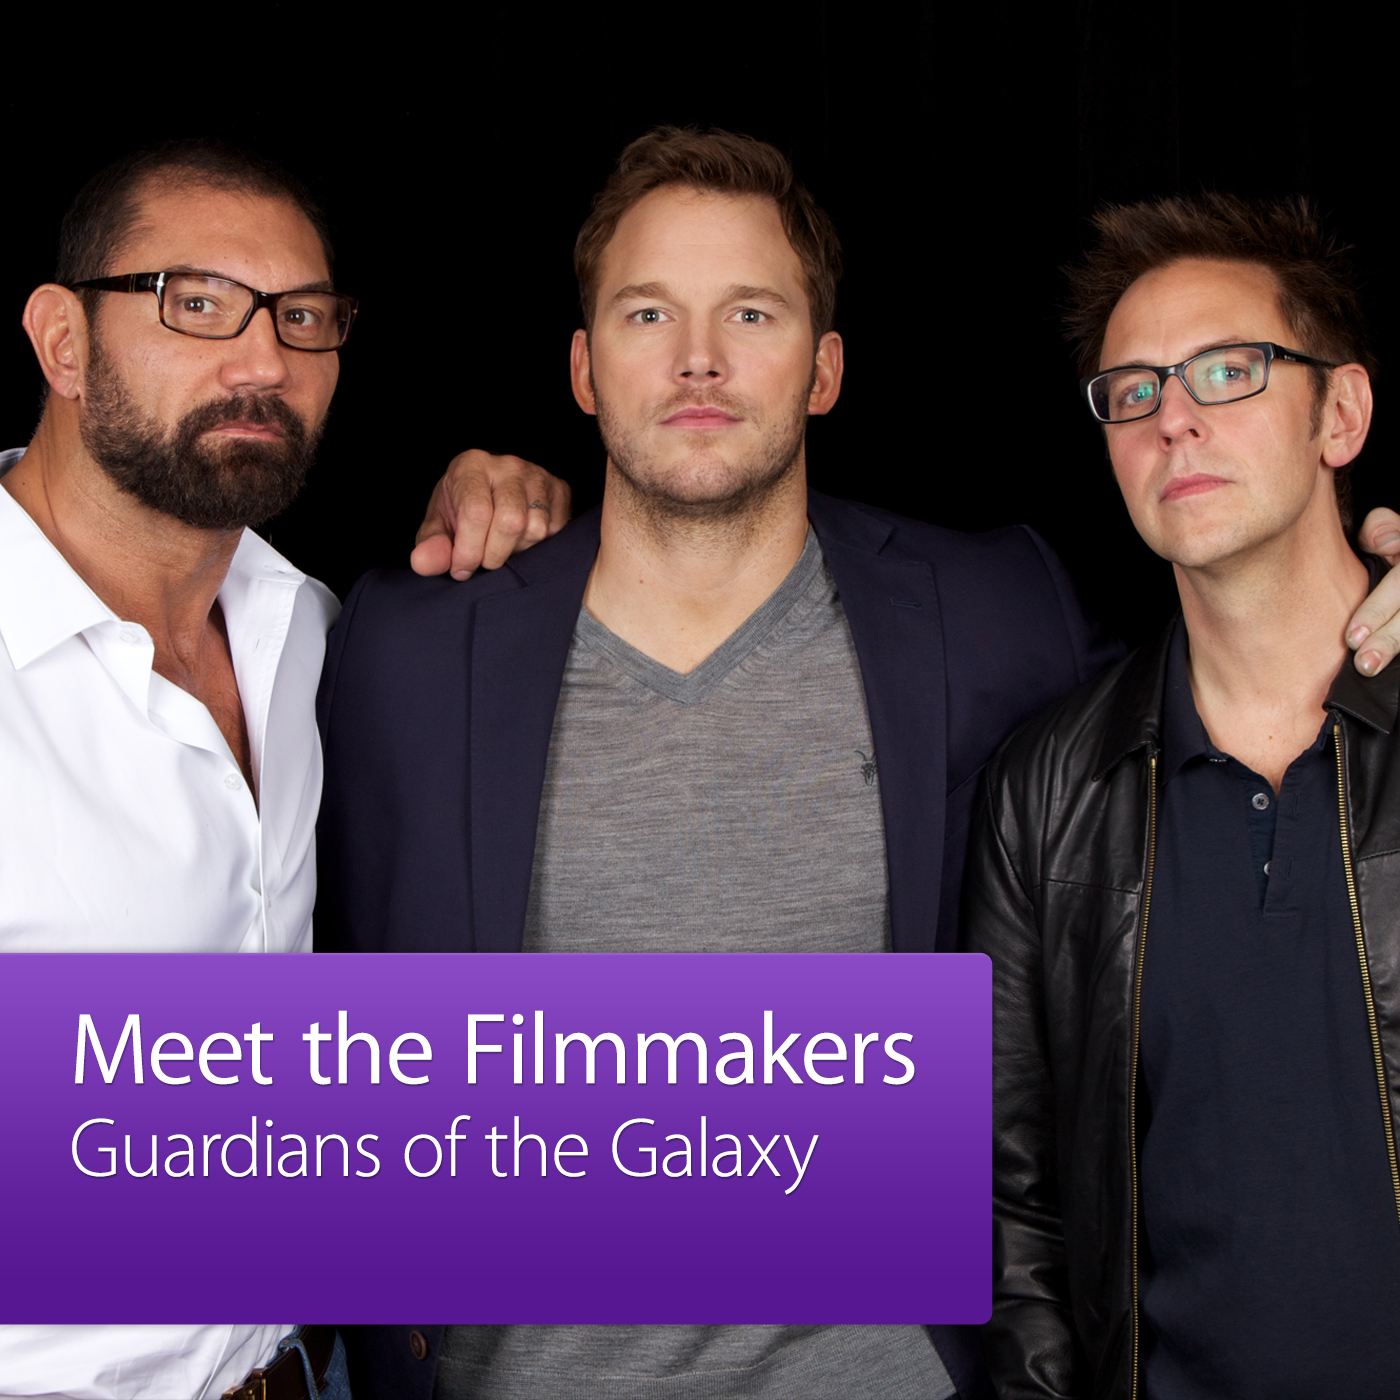 Guardians of the Galaxy: Meet the Filmmakers